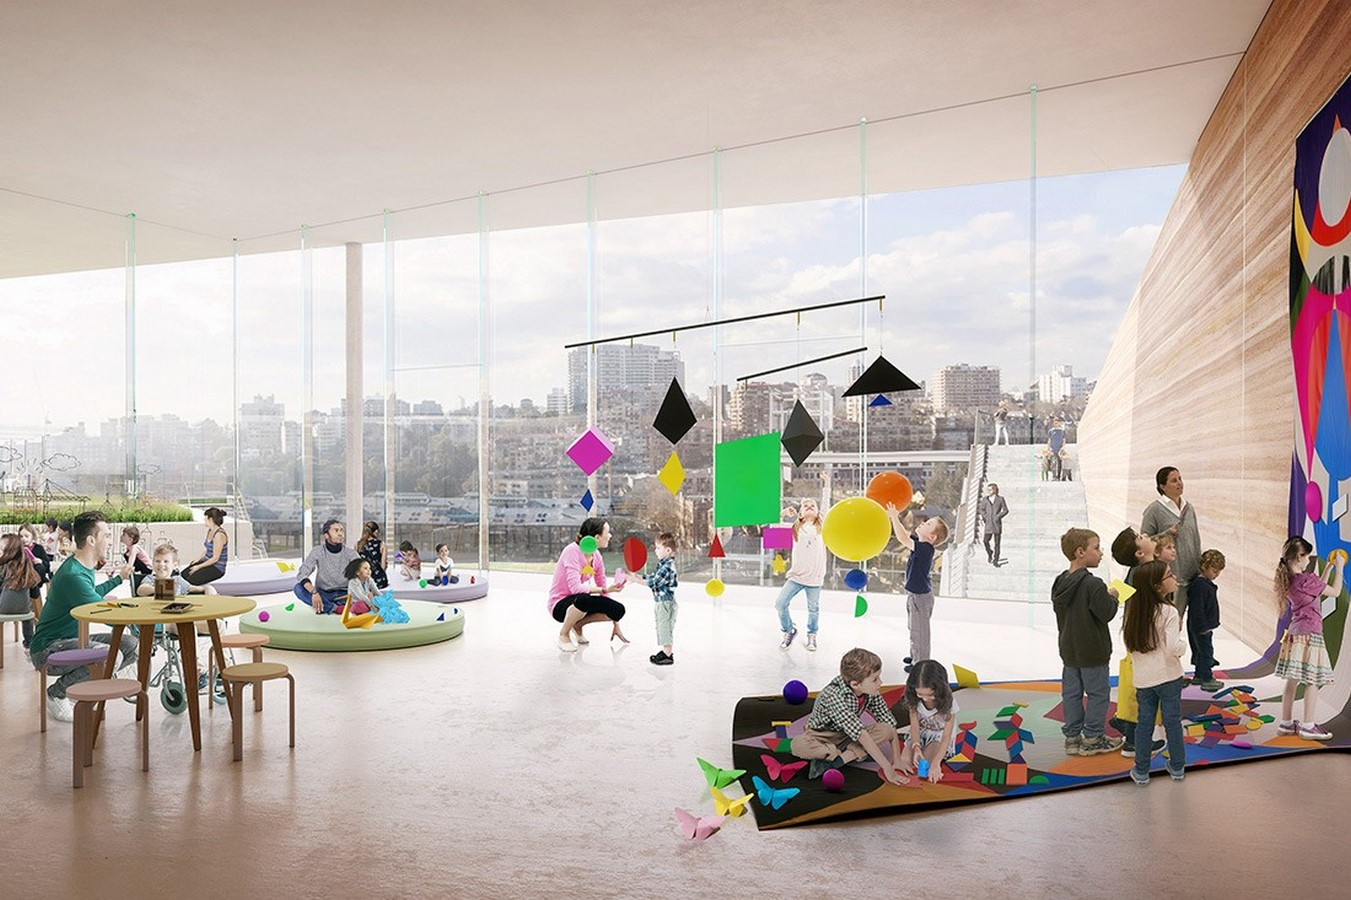 New Images For Art Gallery Of South Wales Expansion In Sydney revealed by SANAA - Sheet7